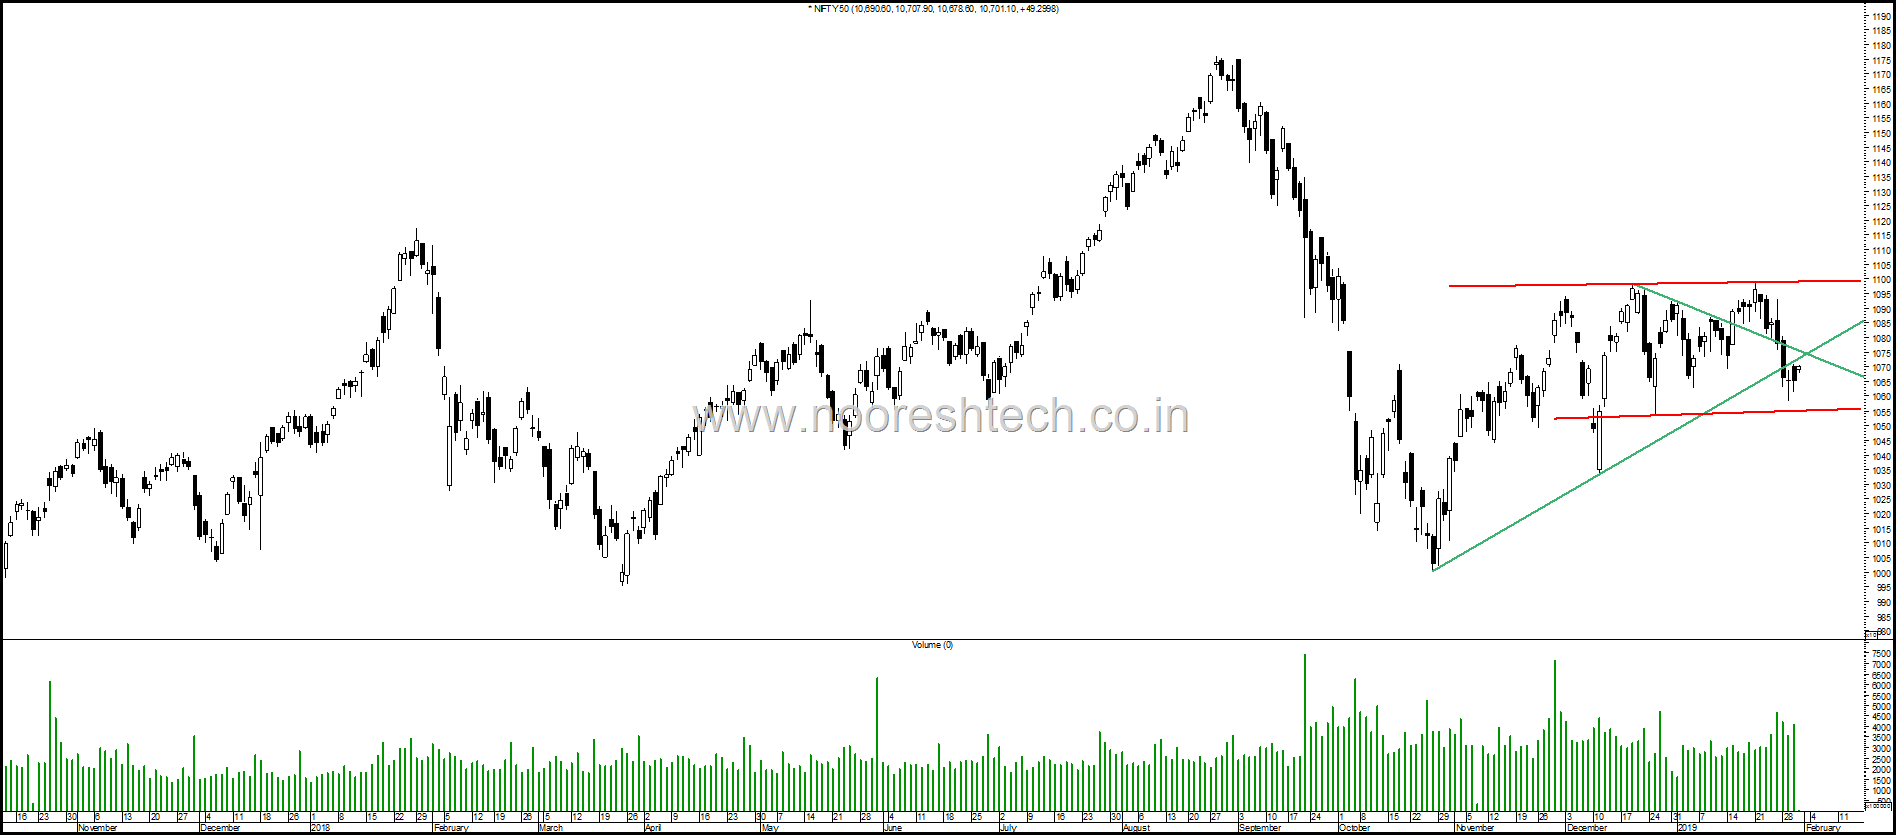 Nifty in a Range